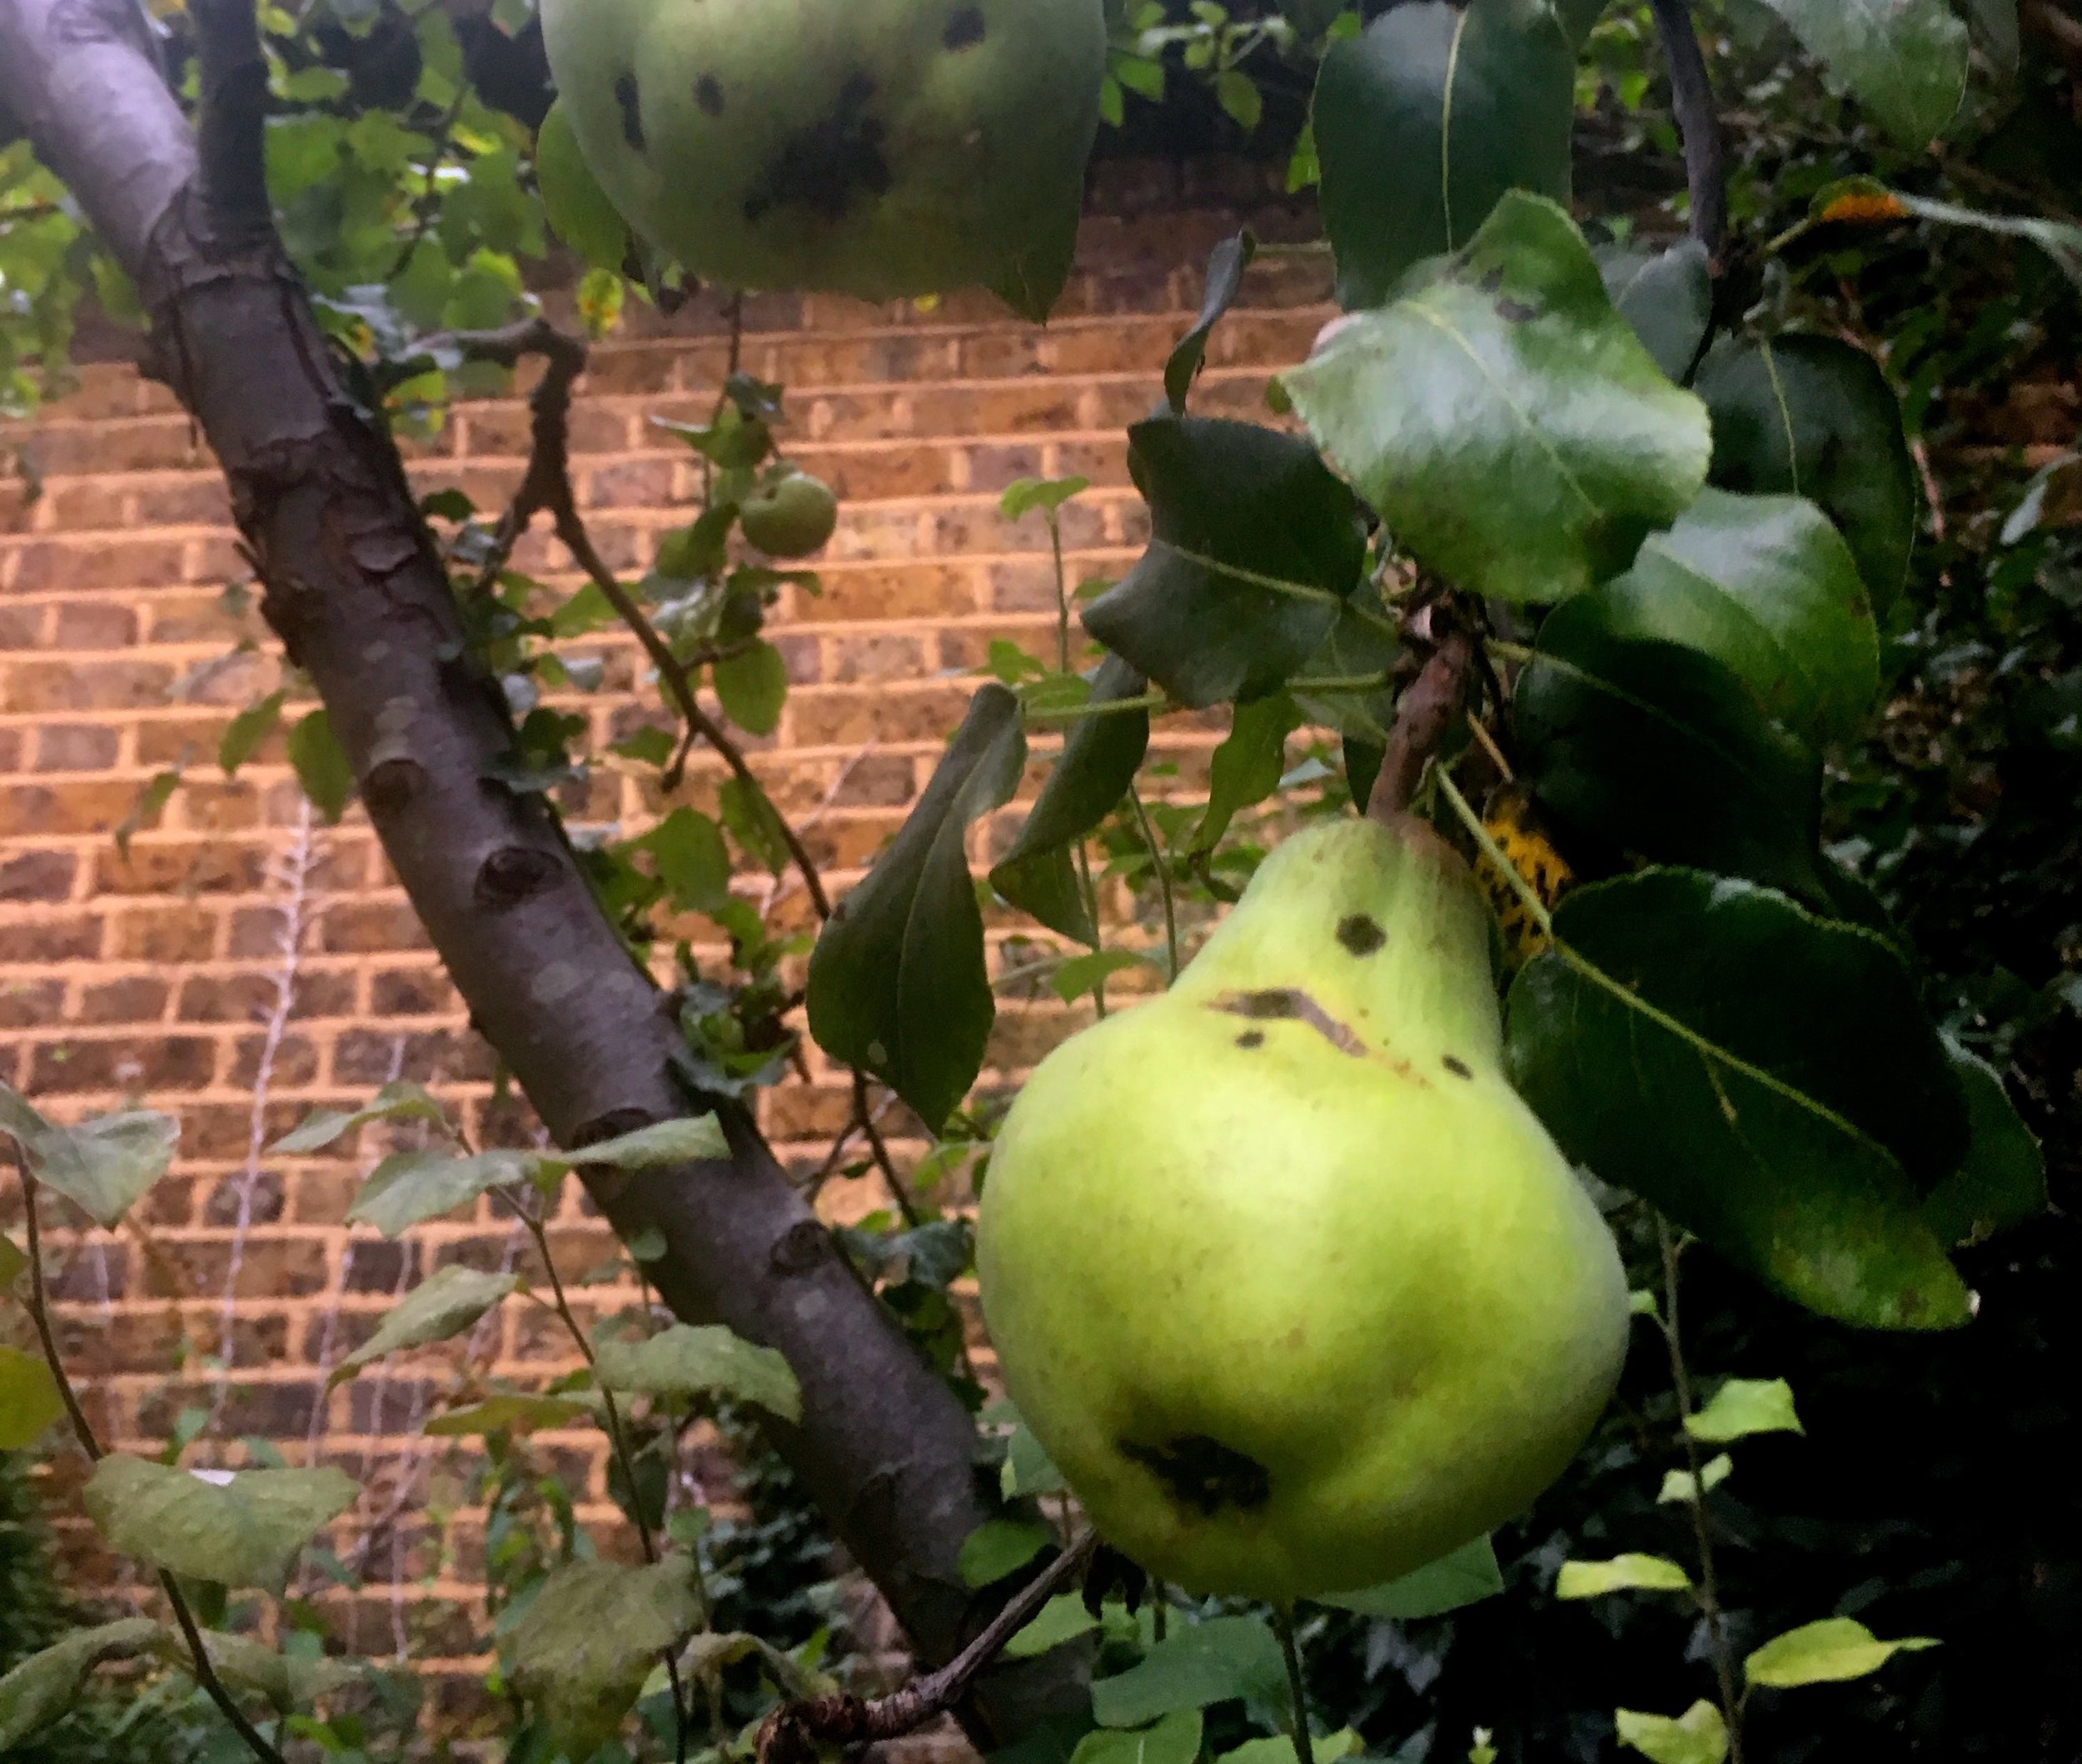 One of the pears